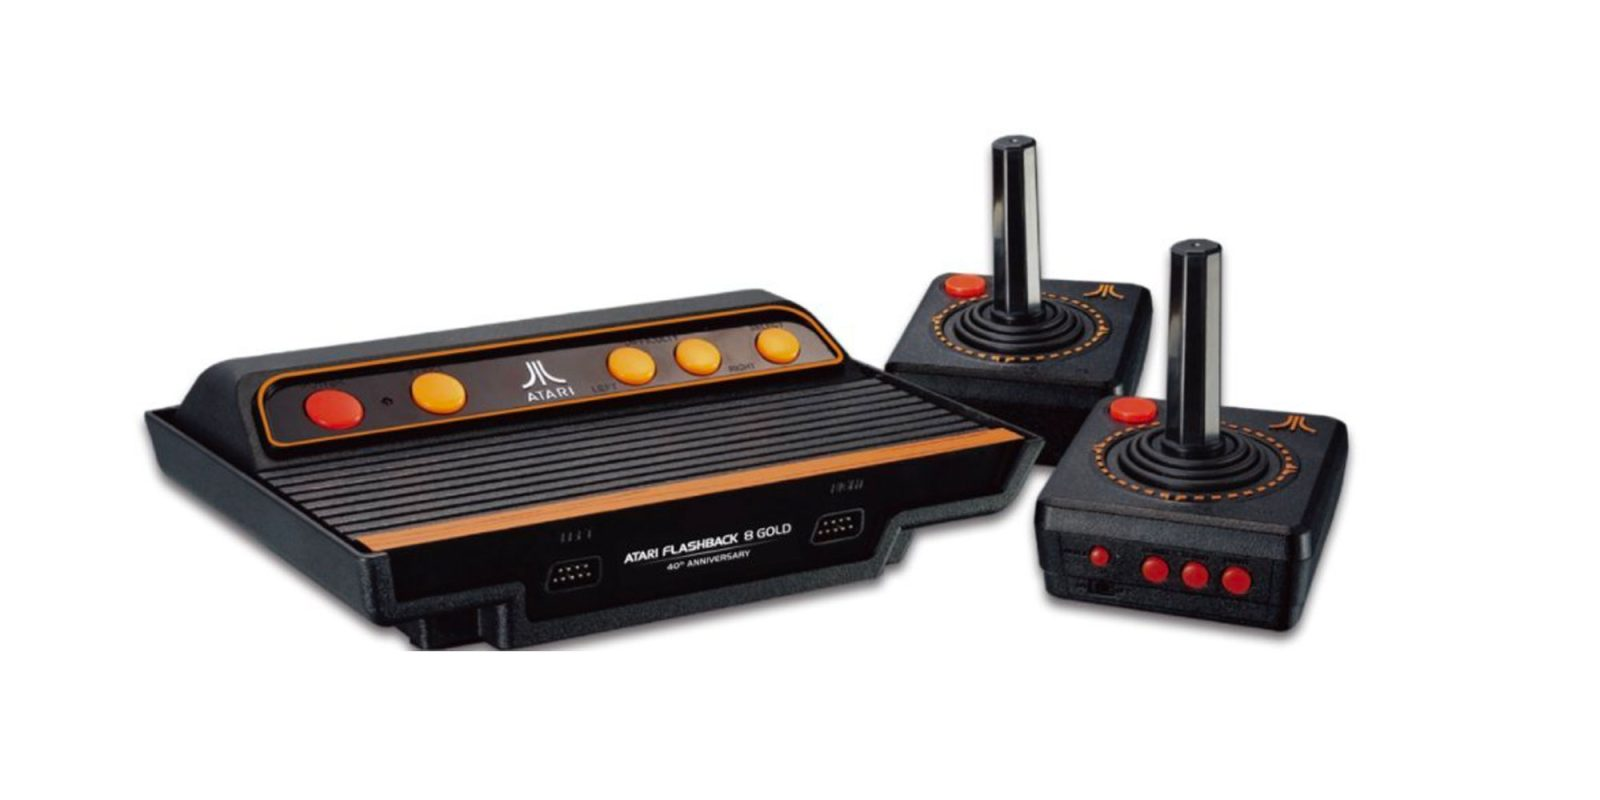 Atari's Flashback 8 Gold HD Console is great for retro gamers, $30 at Walmart